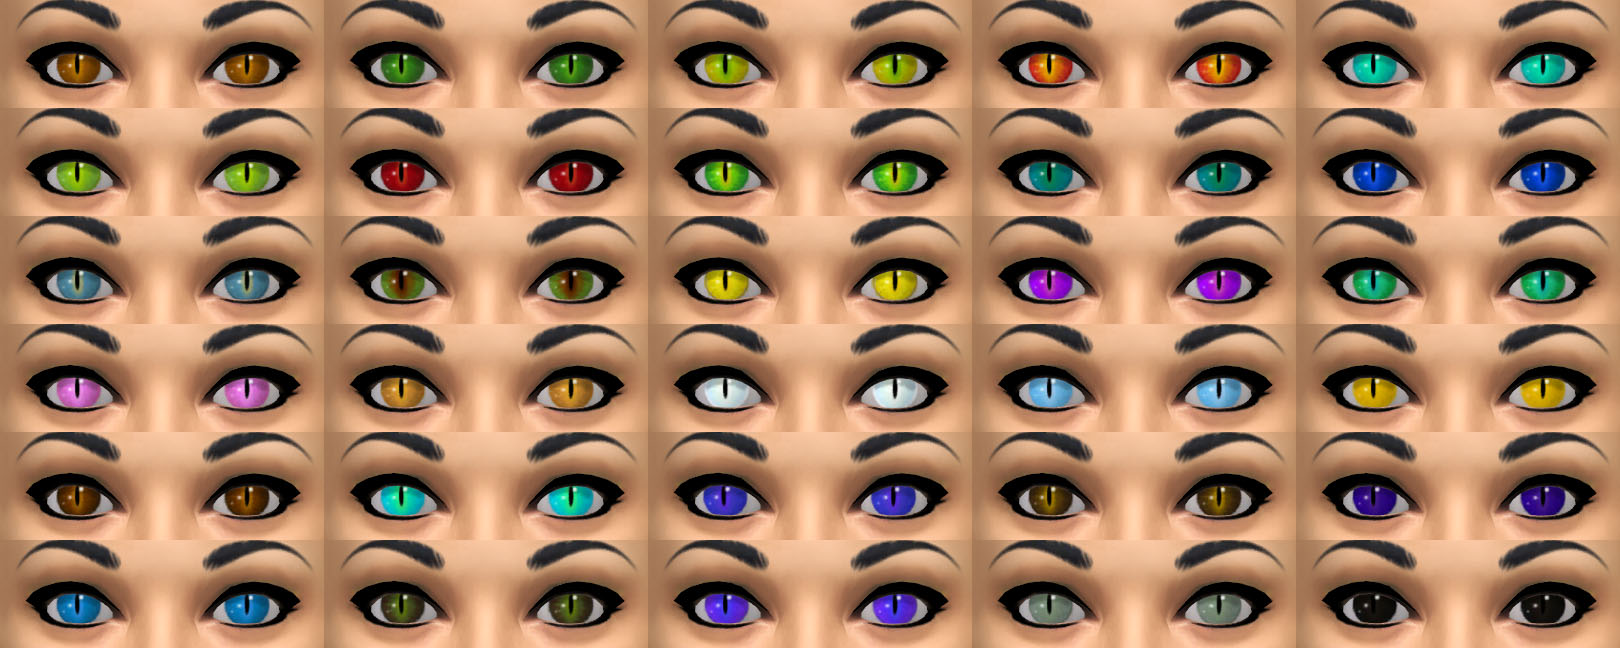 Gothelittle Rose's Cat Eyes by Gothelittle